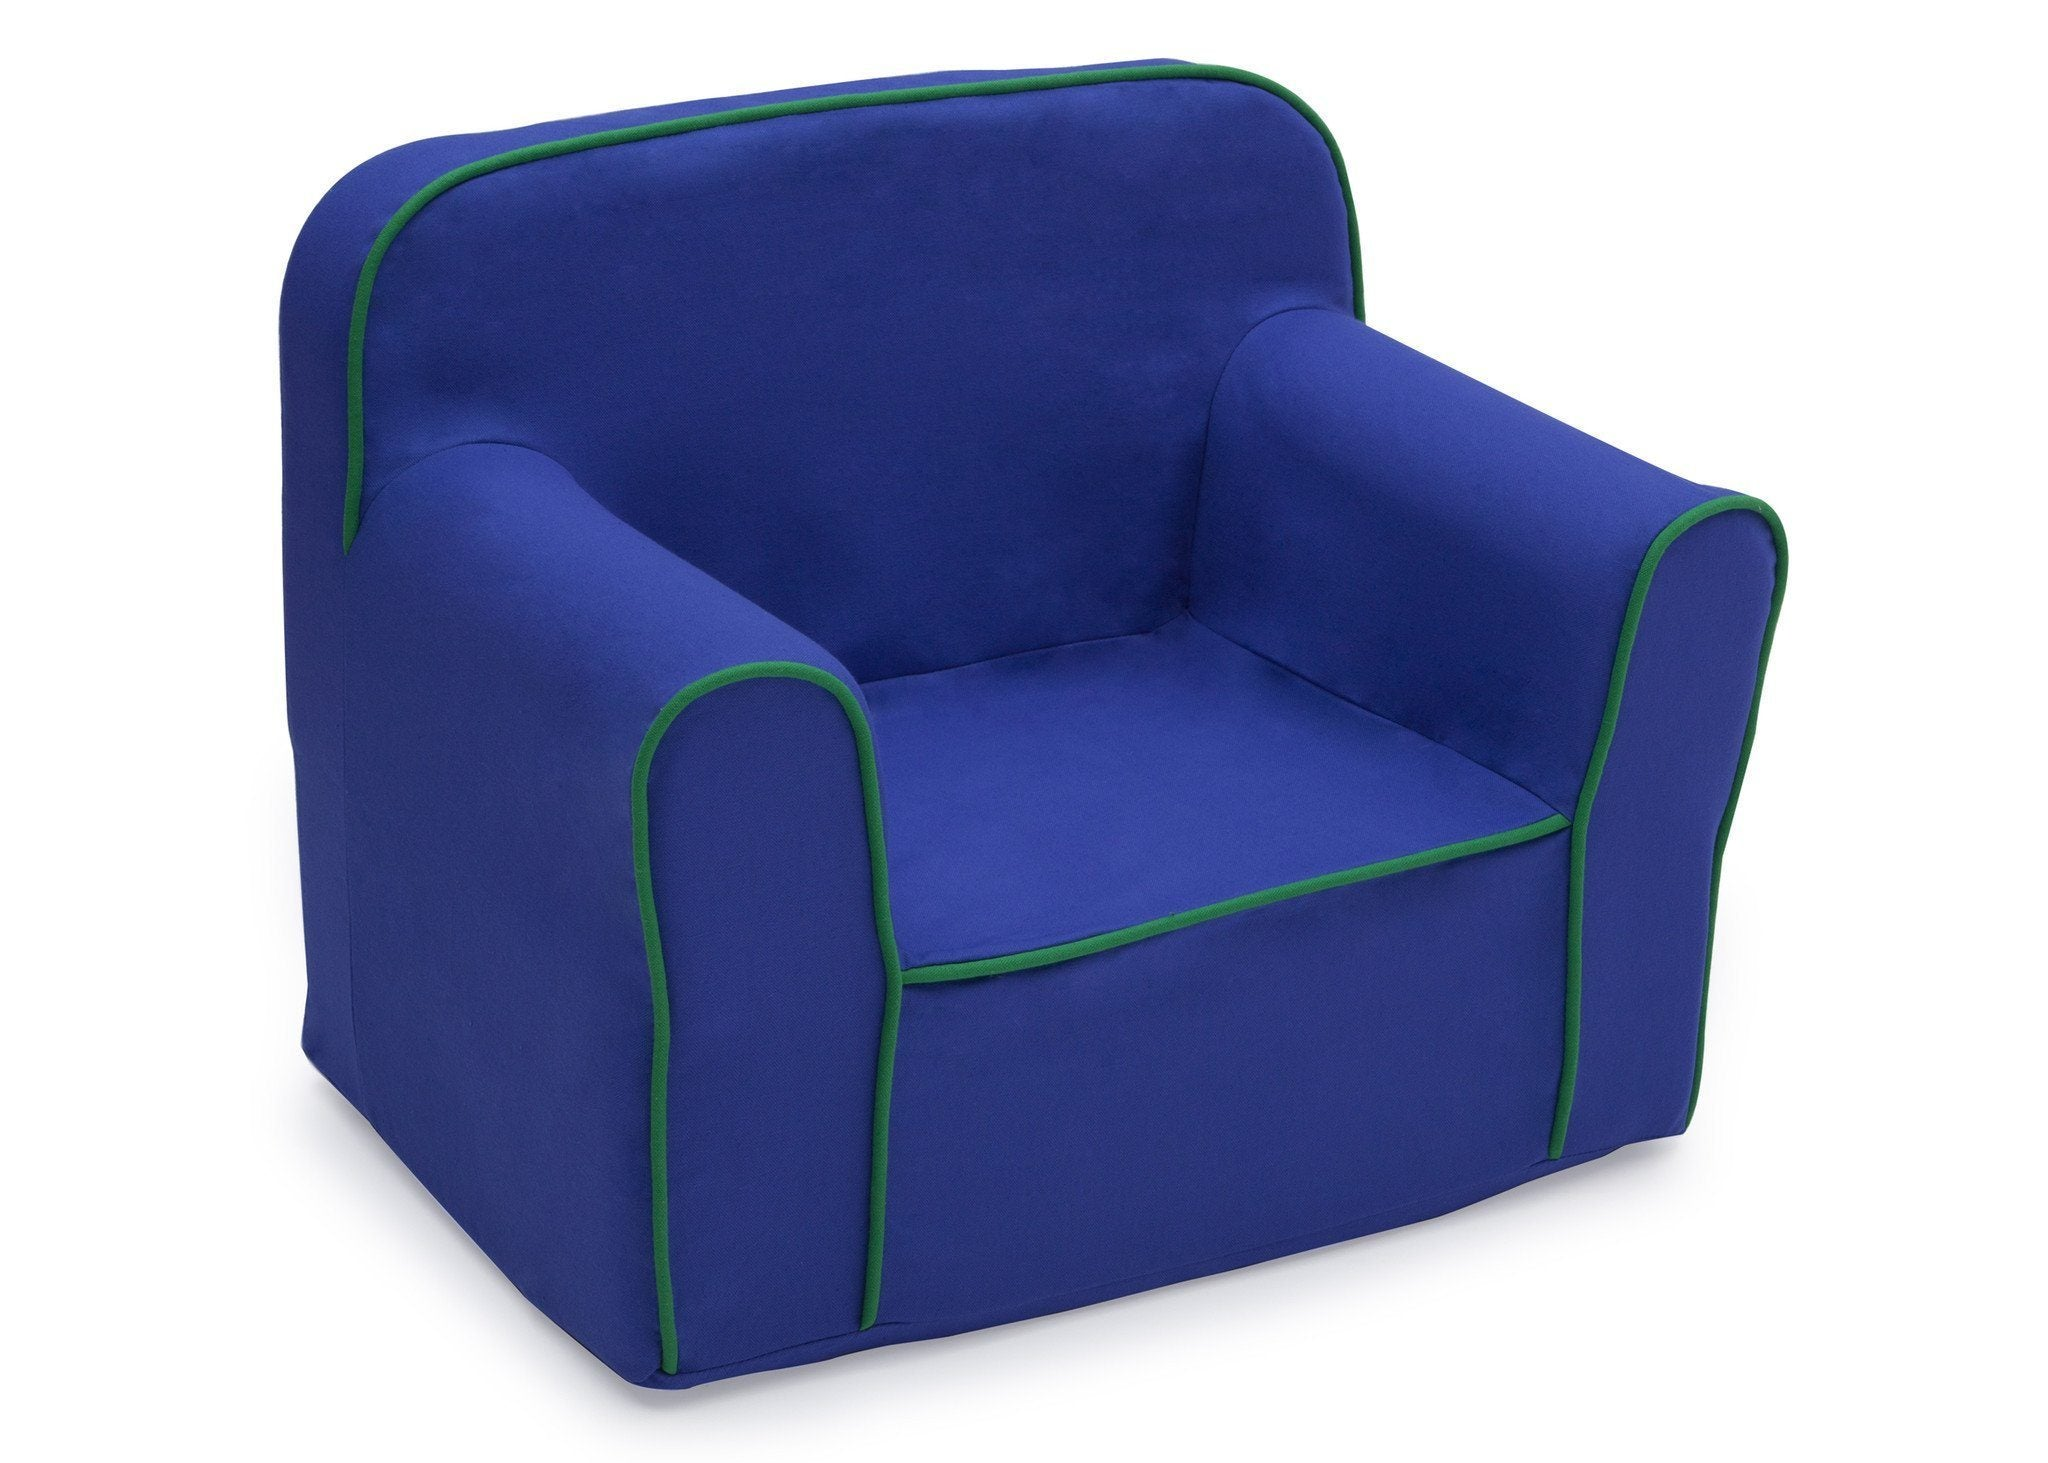 Delta Children Blue And Green Foam Snuggle Chair Style 1, Right View A1a ...